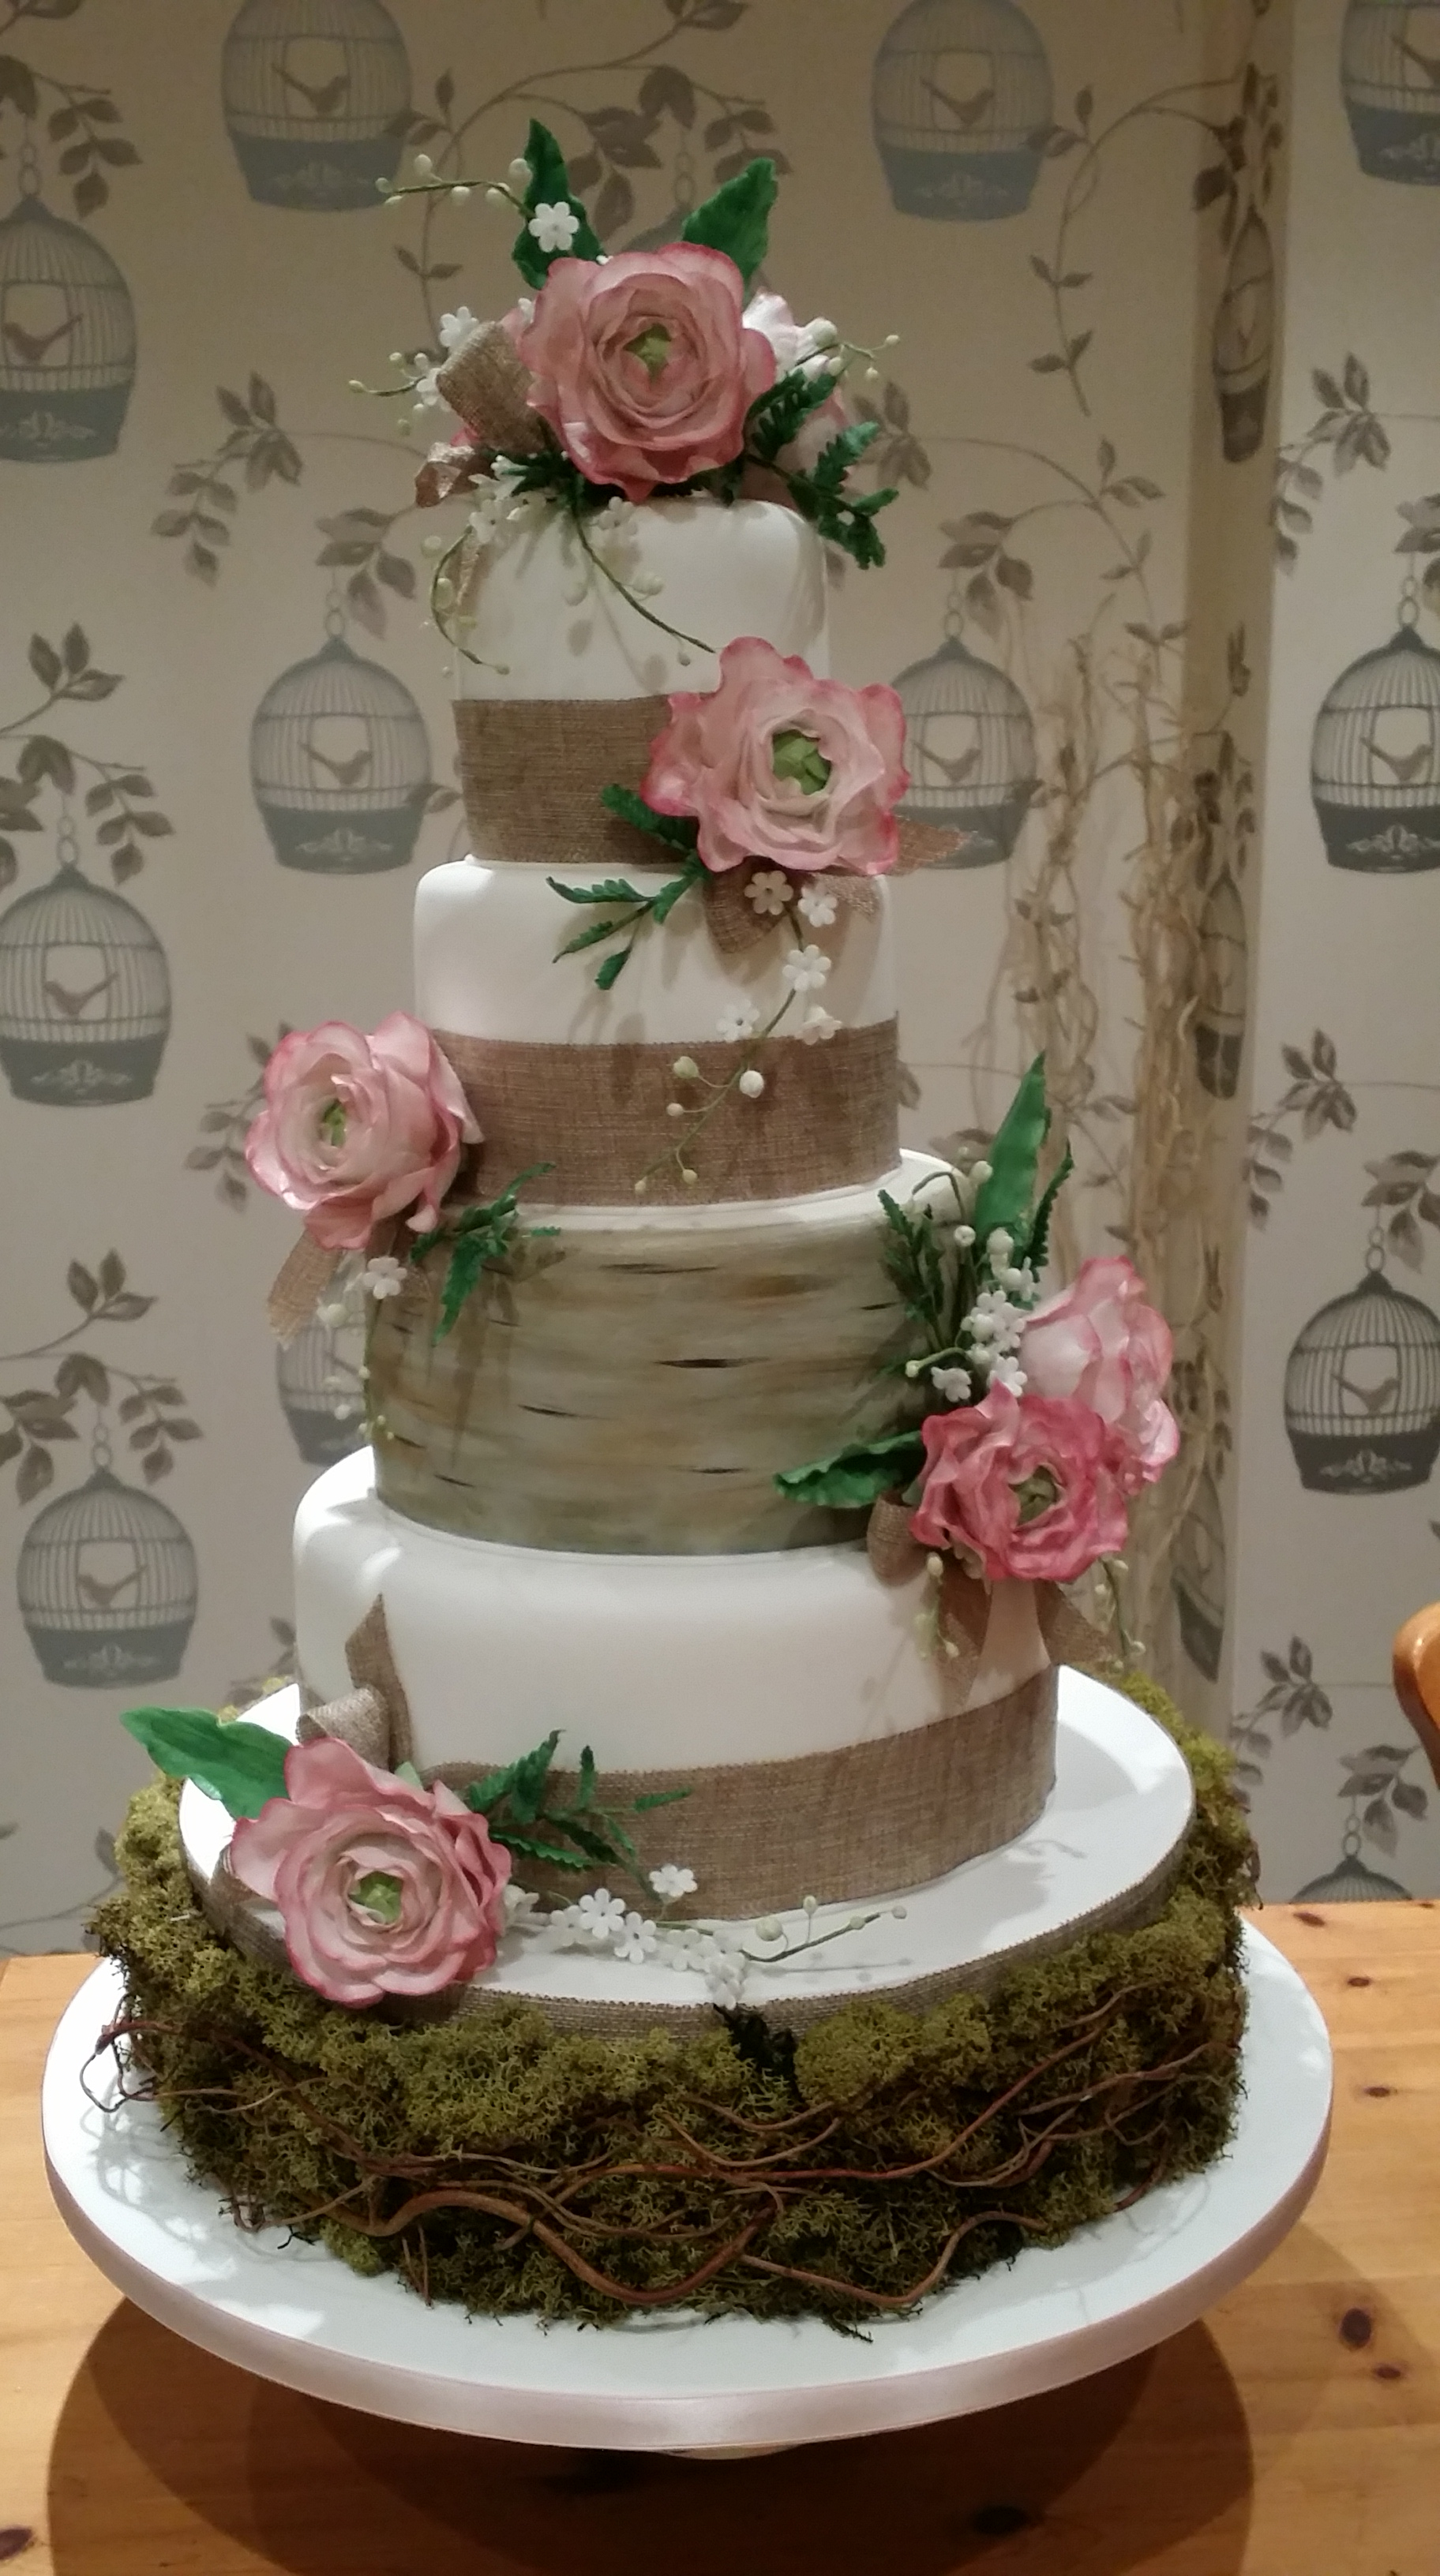 4 Tier Rustic Vintage Wedding Cake The Clever Little